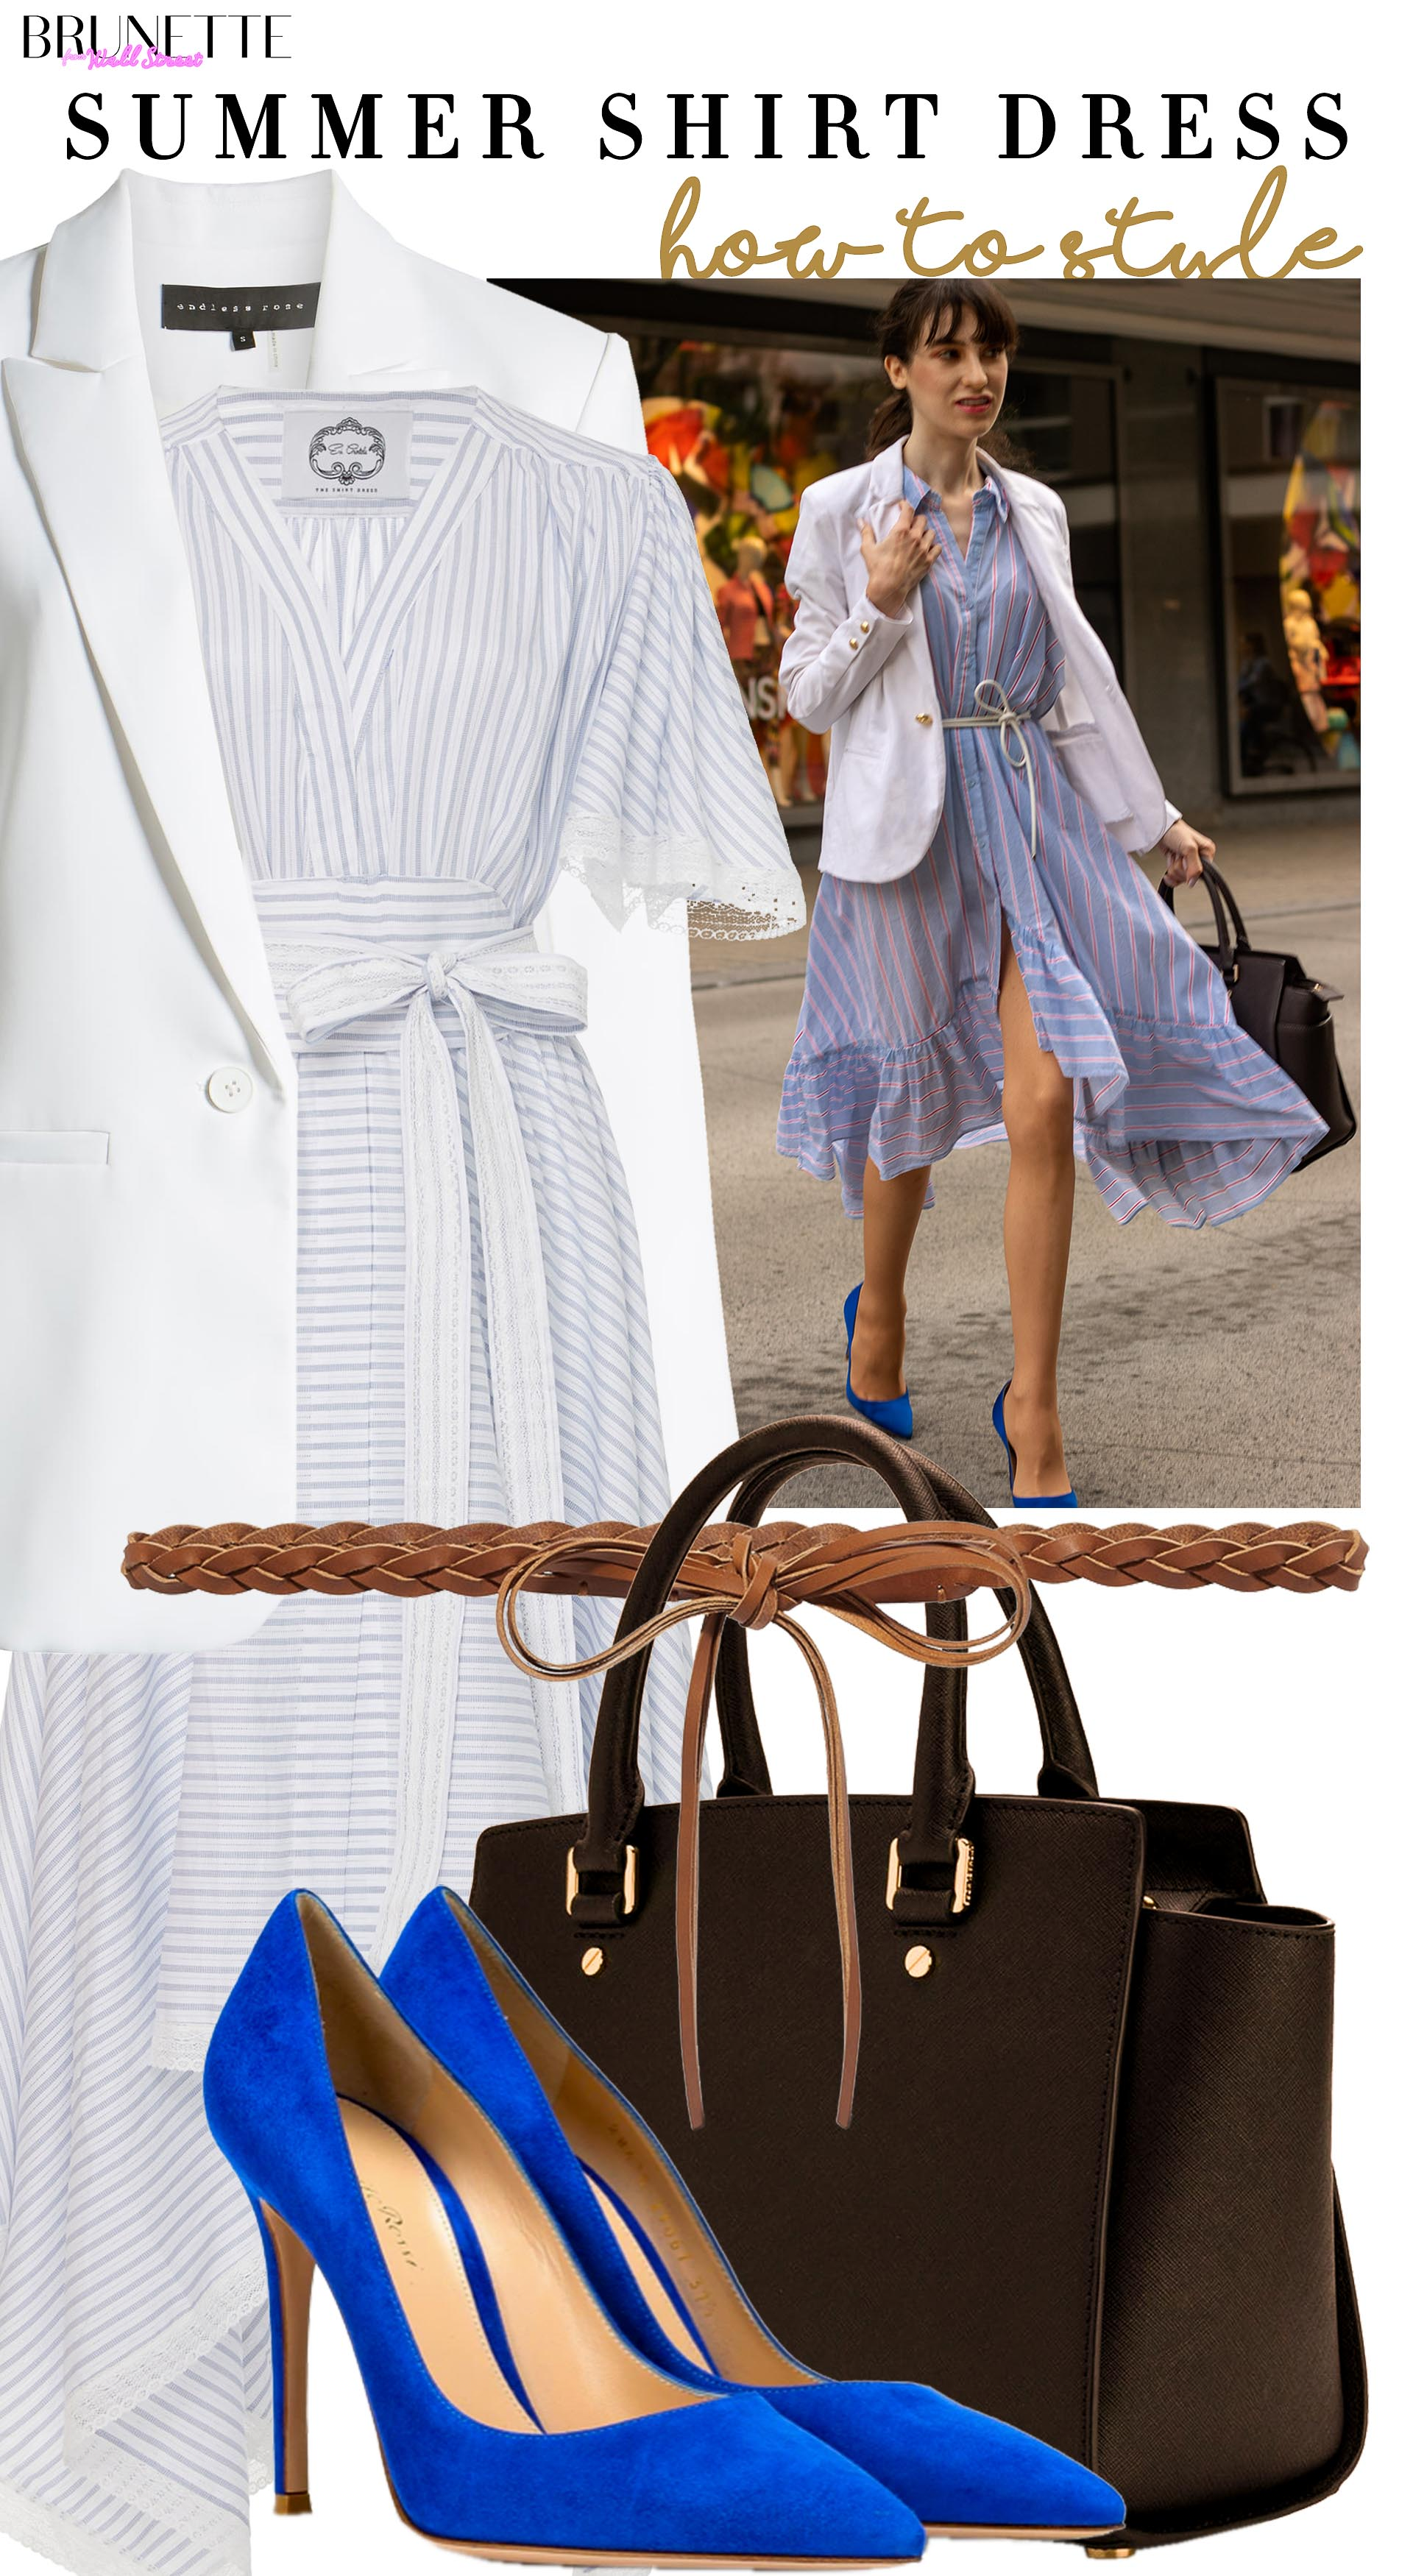 Brunette from Wall Street how to style strip summer shirtdress for work